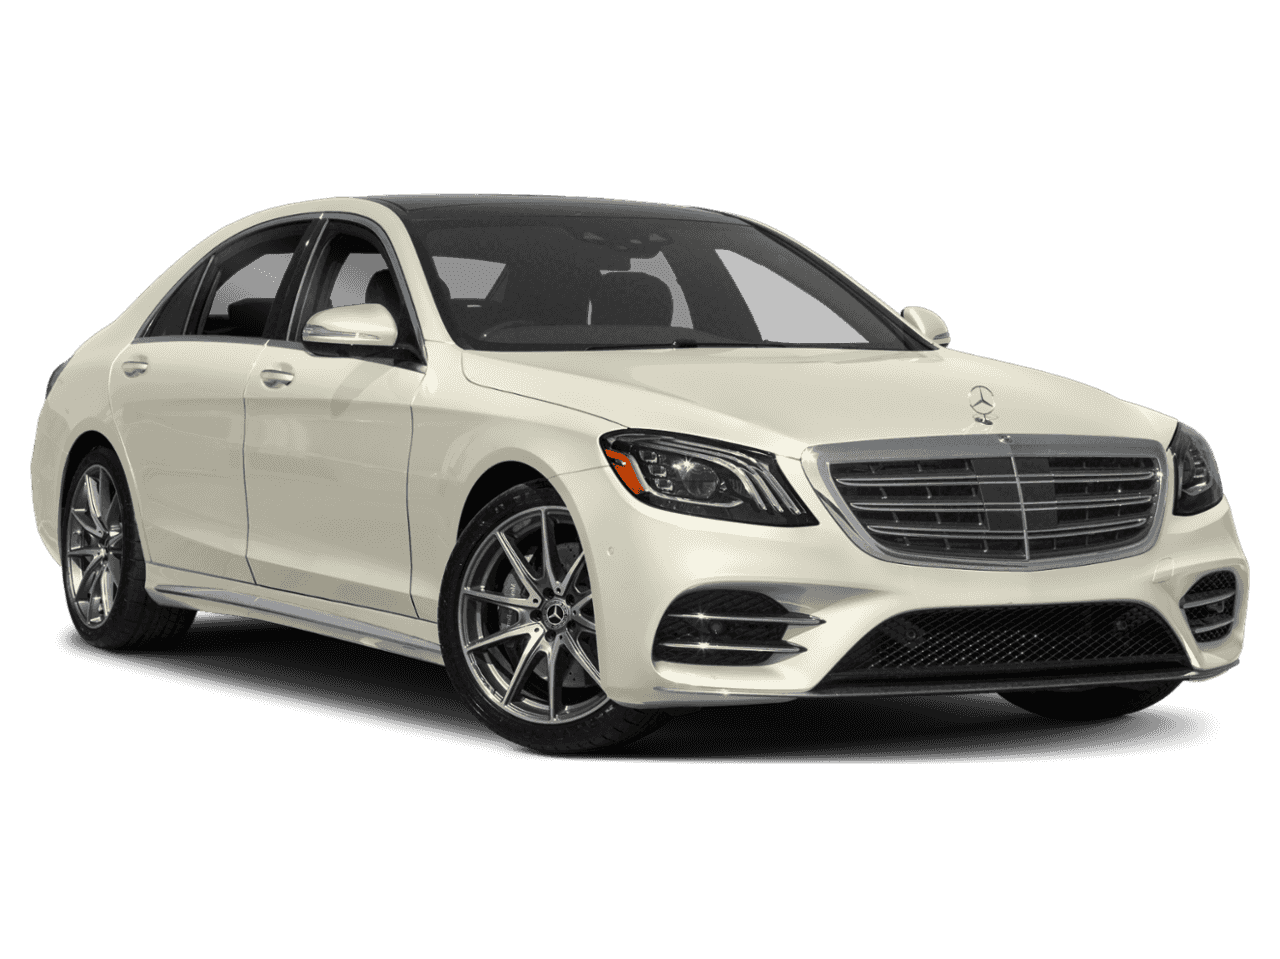 86 All New Mercedes S Class 2019 Model with Mercedes S Class 2019